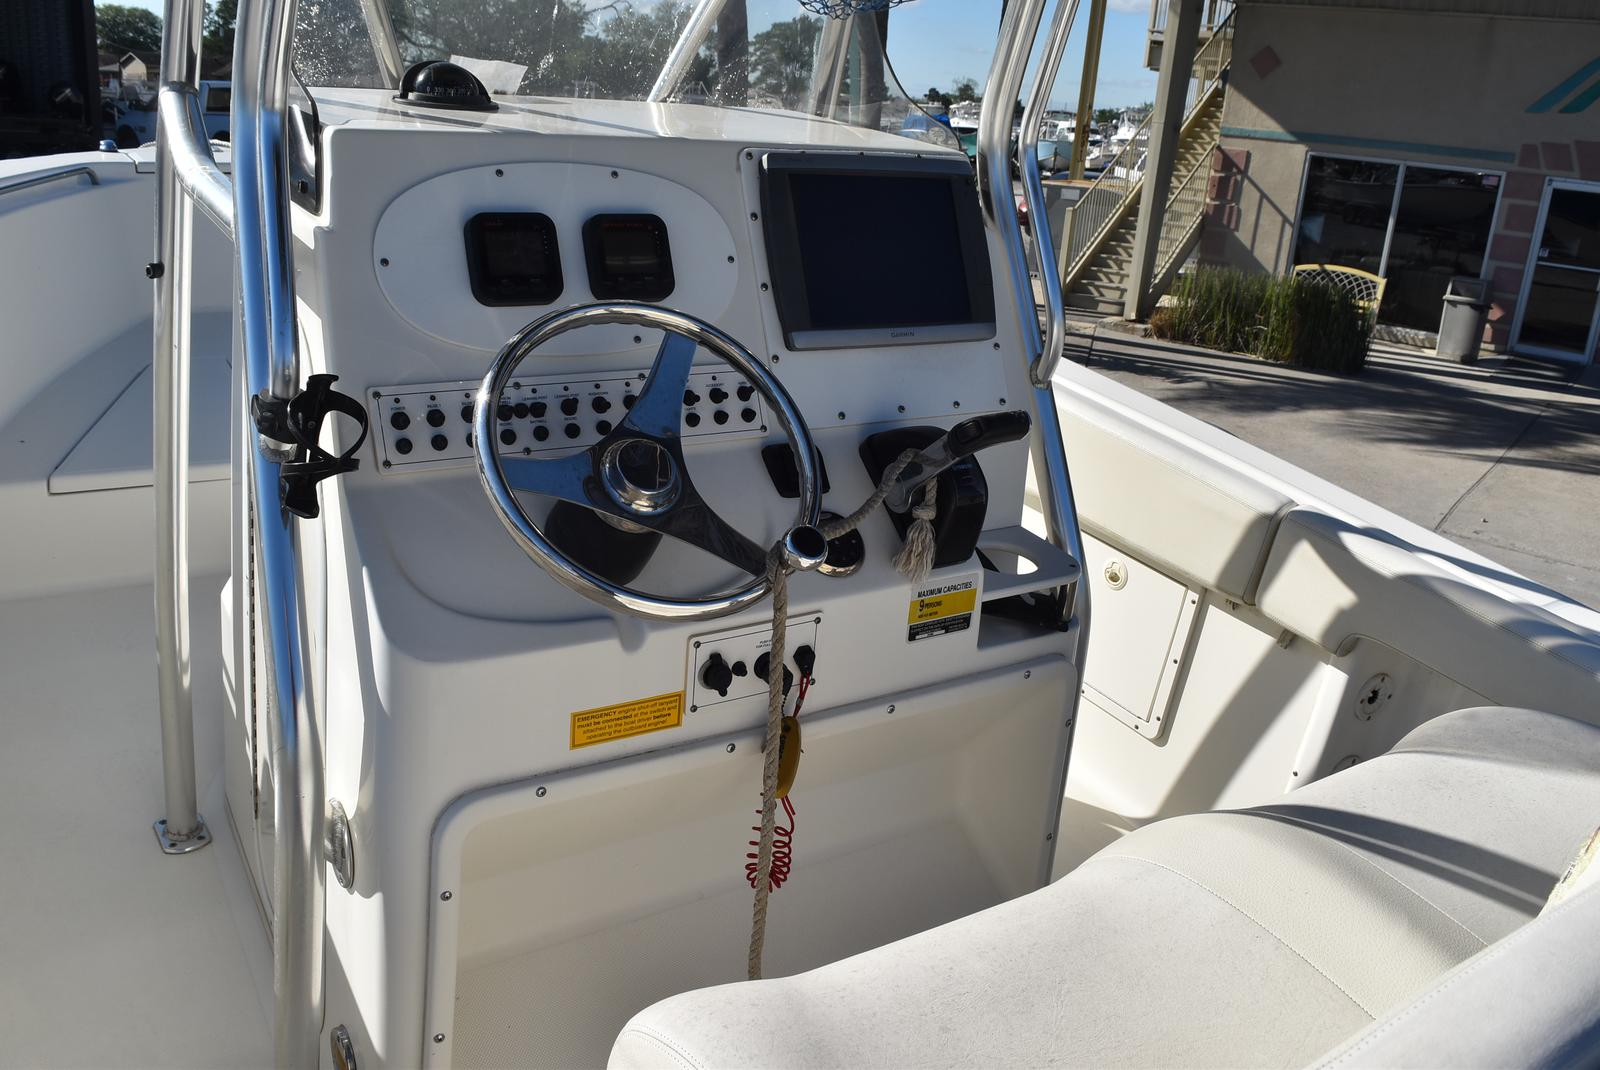 2006 Triton boat for sale, model of the boat is 2486 & Image # 13 of 24